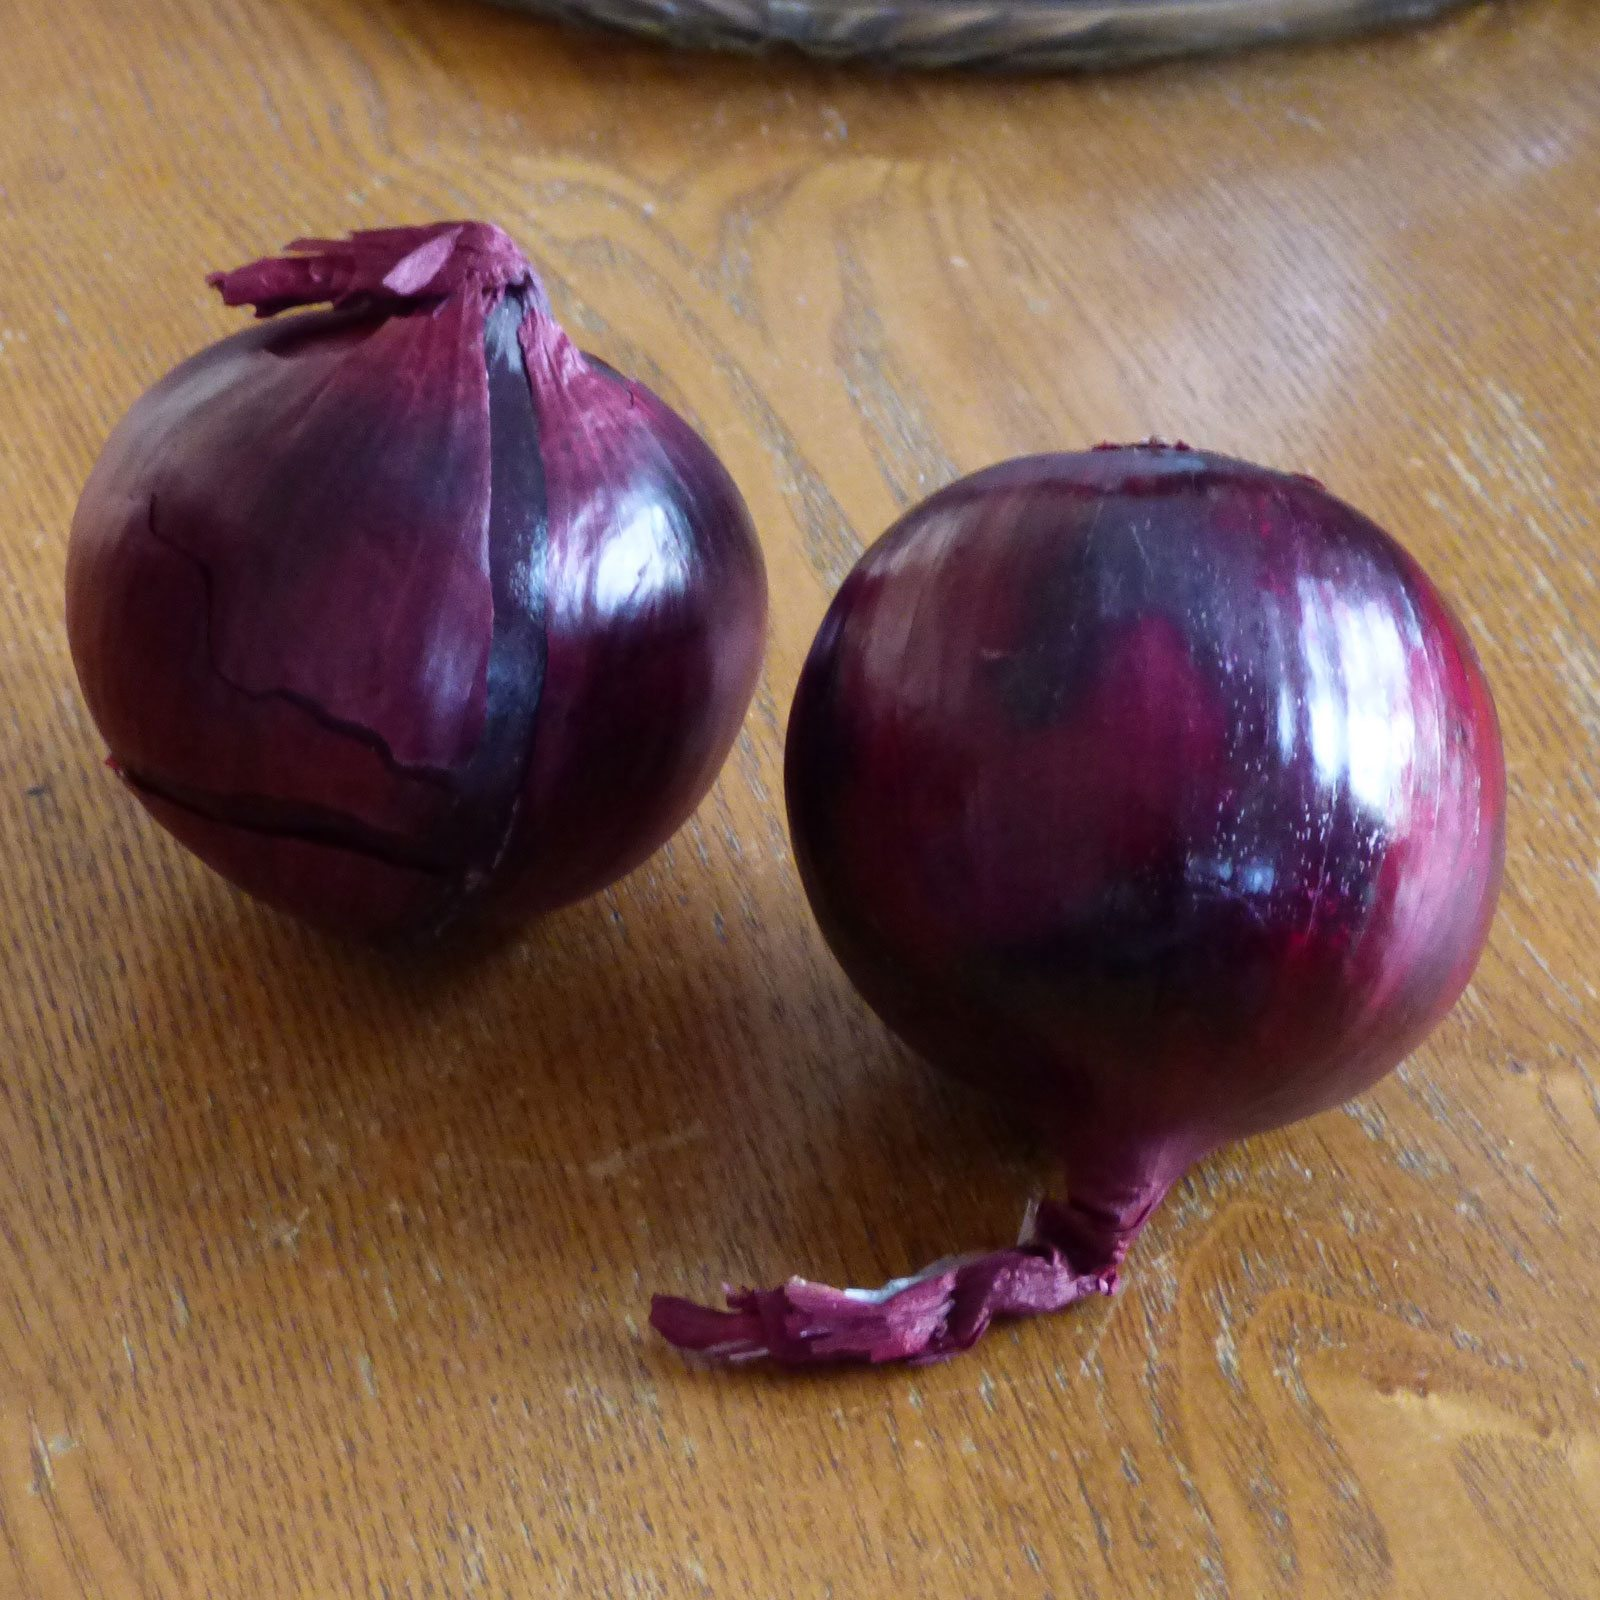 Planting And Harvesting Red Onions – How To Grow Red Onions